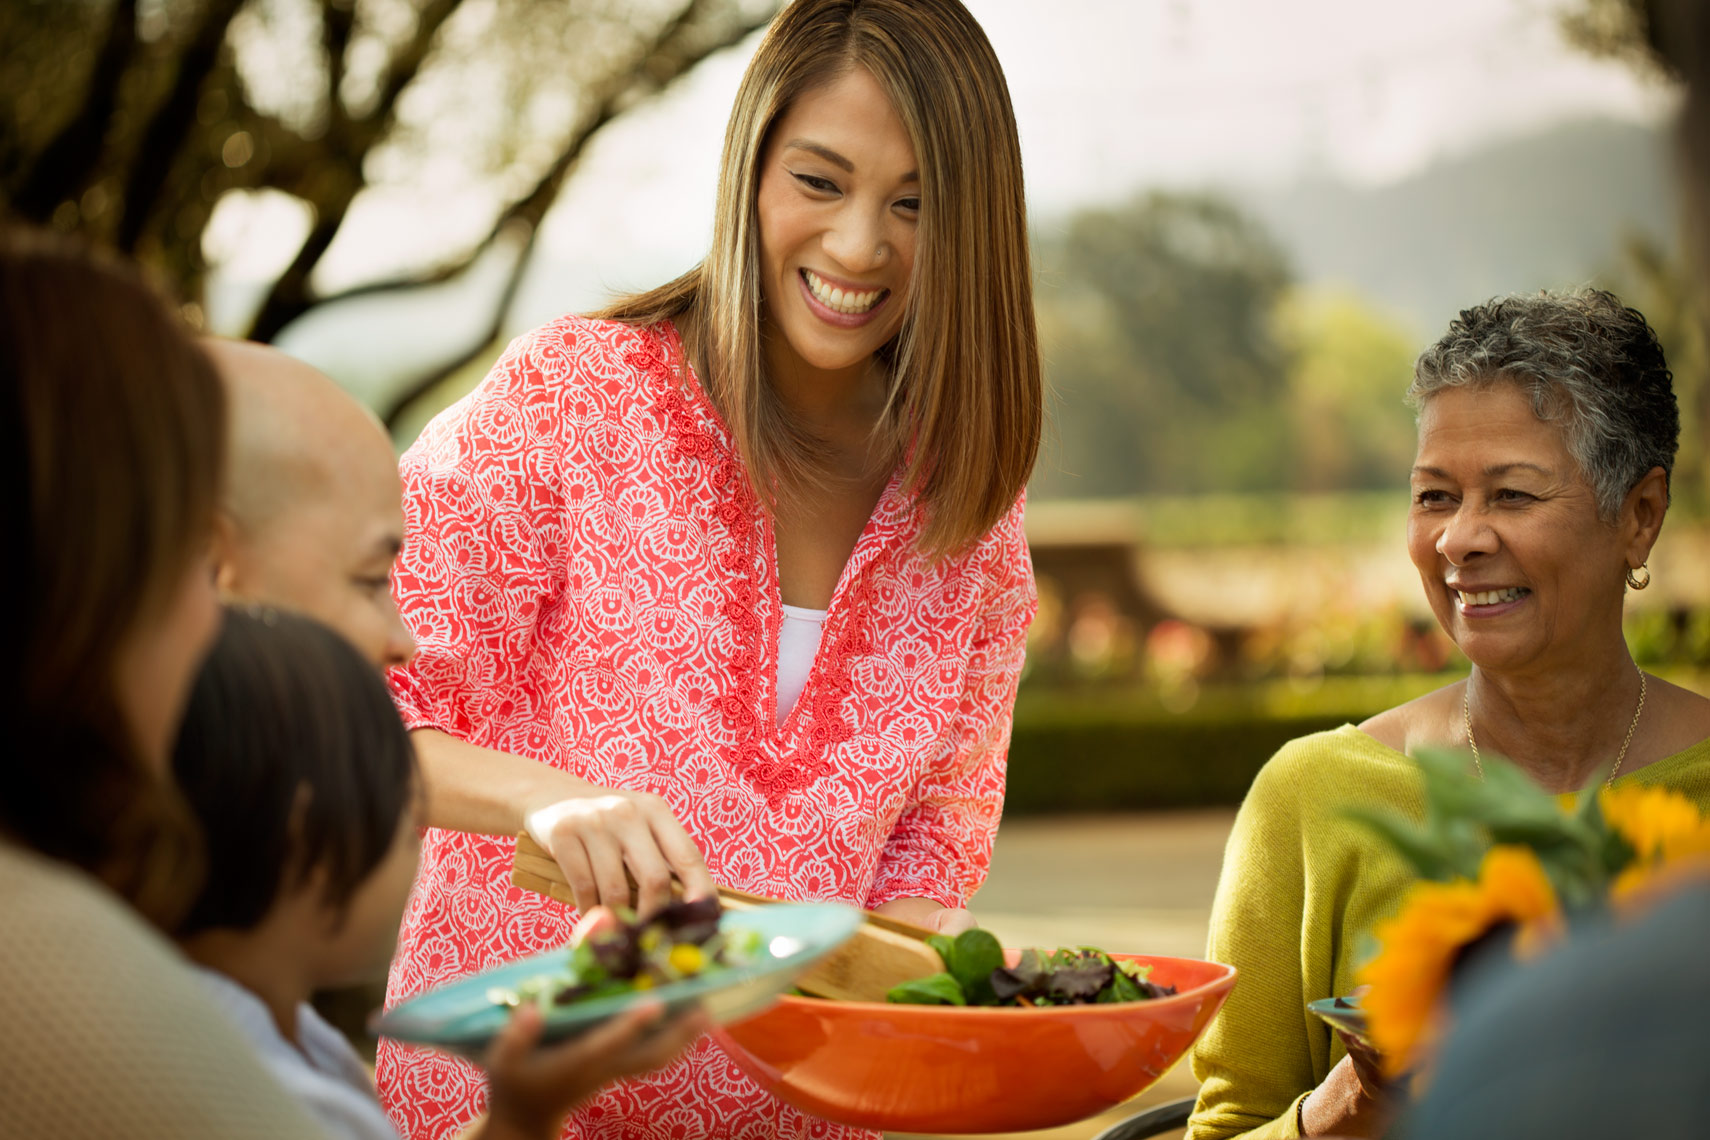 San Francisco Bay Area Advertising, Lifestyle, Commercial Photographer, African american family dinning outdoor in the backyard garden, women smiling, family gathering, multi racial family